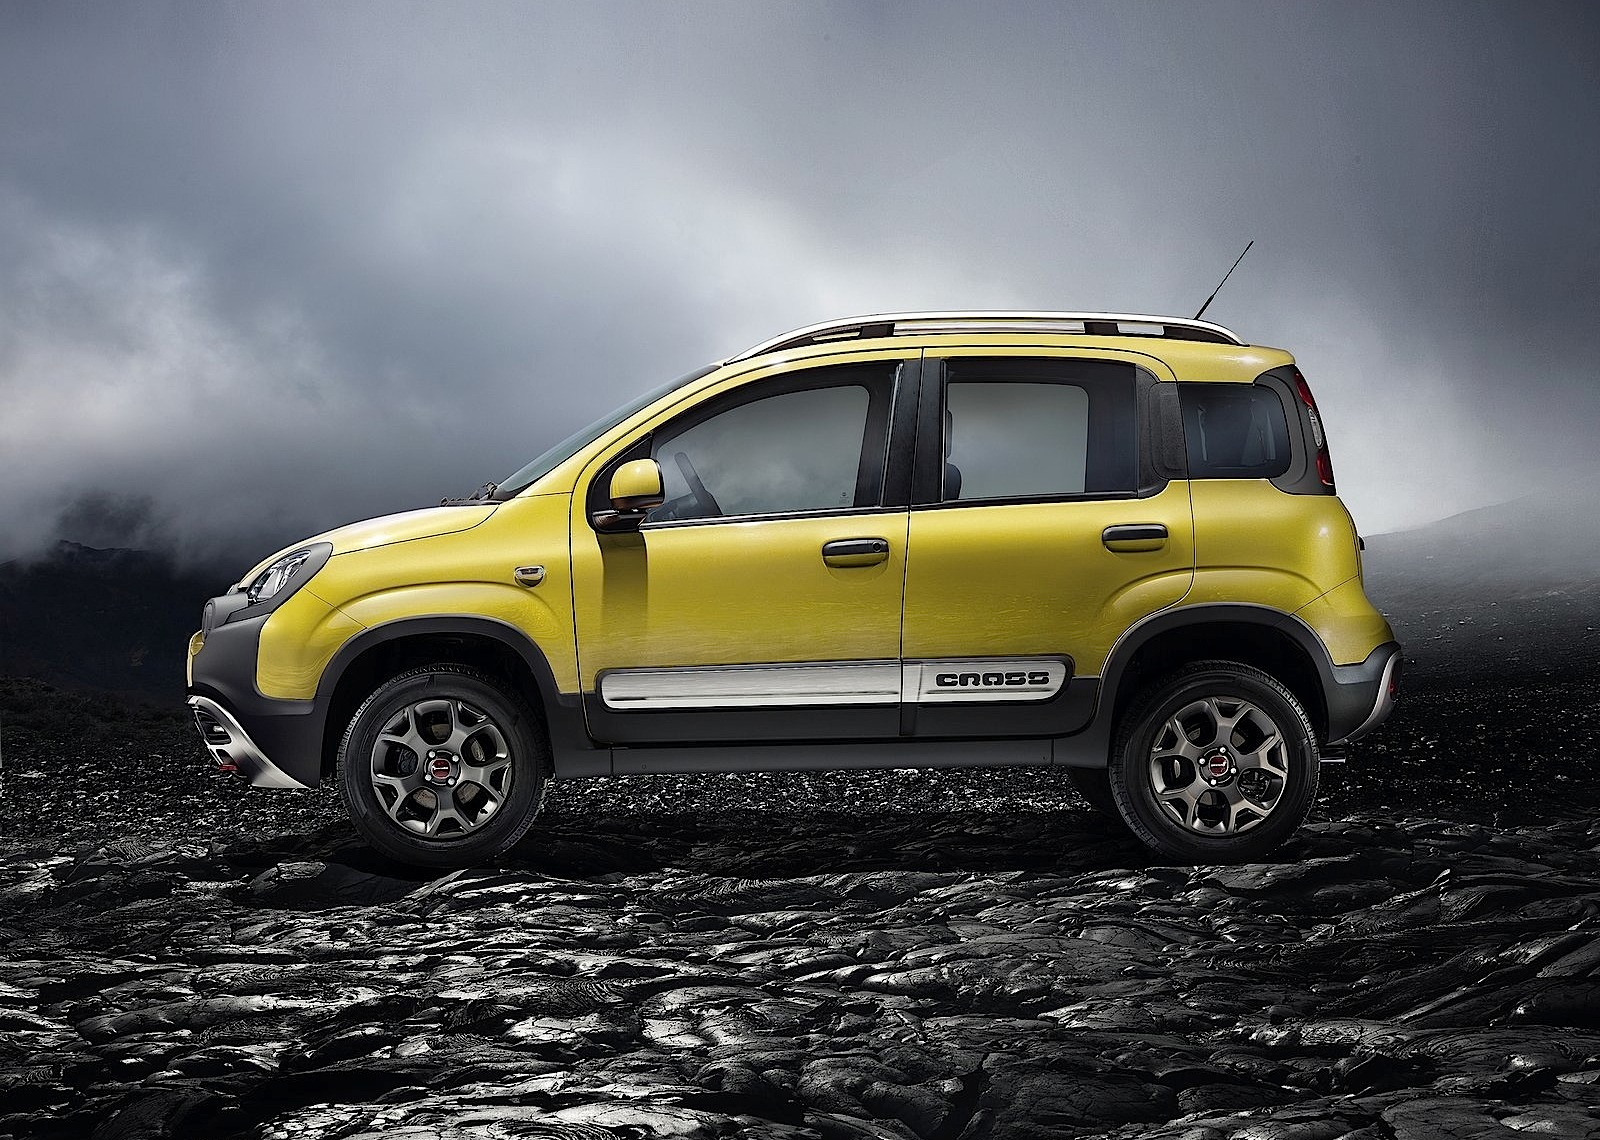 fiat panda cross specs photos 2014 2015 2016 2017 2018 autoevolution. Black Bedroom Furniture Sets. Home Design Ideas